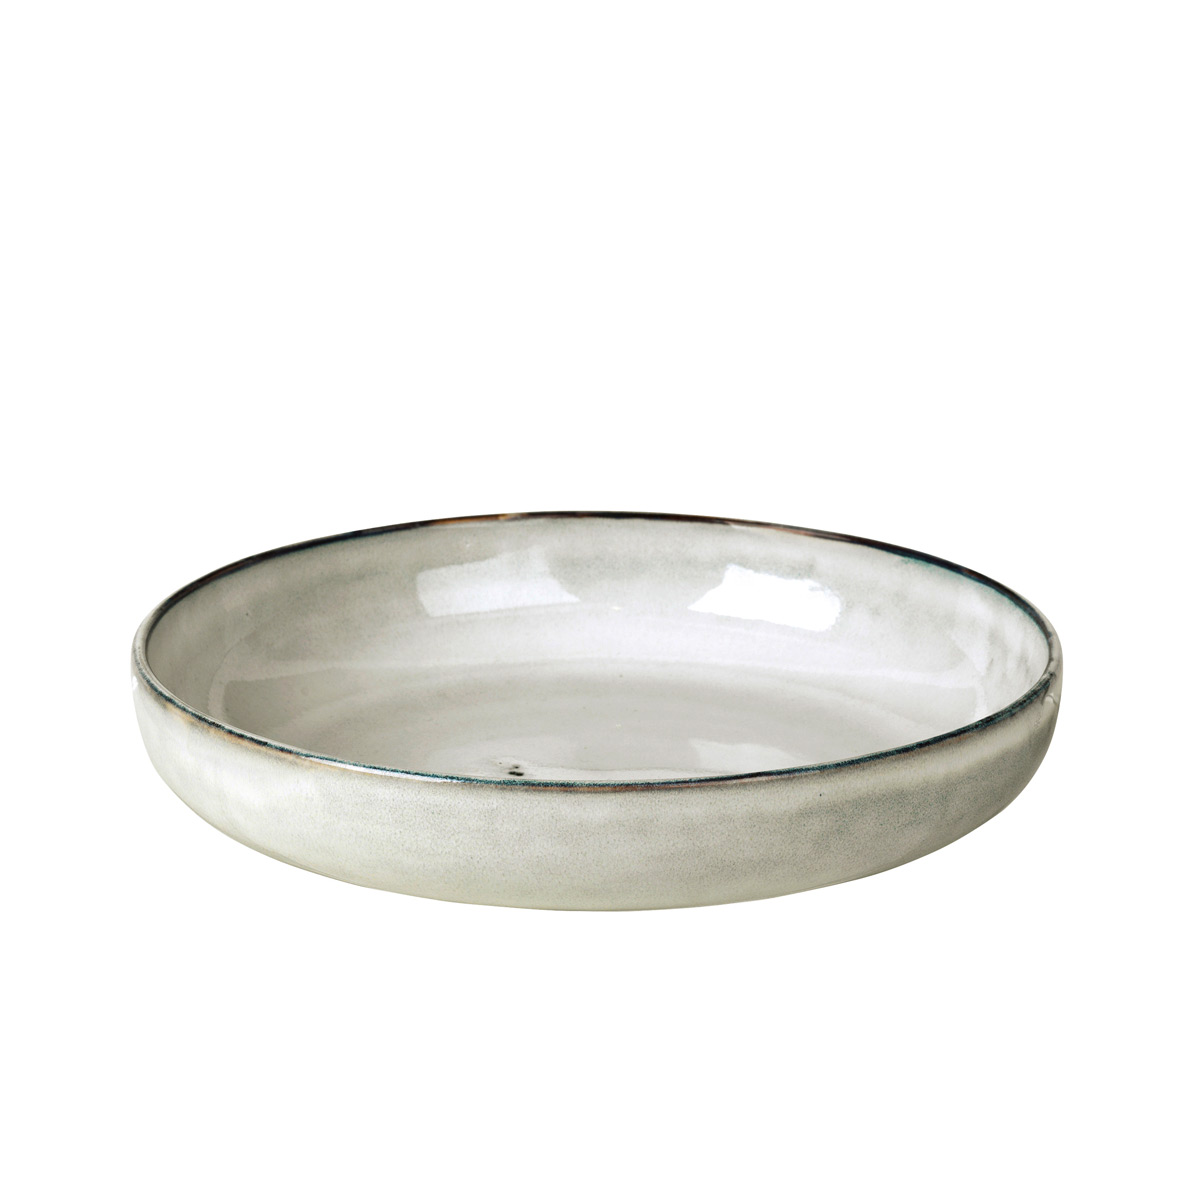 14533034-Nordic-Sand-wide-bowl